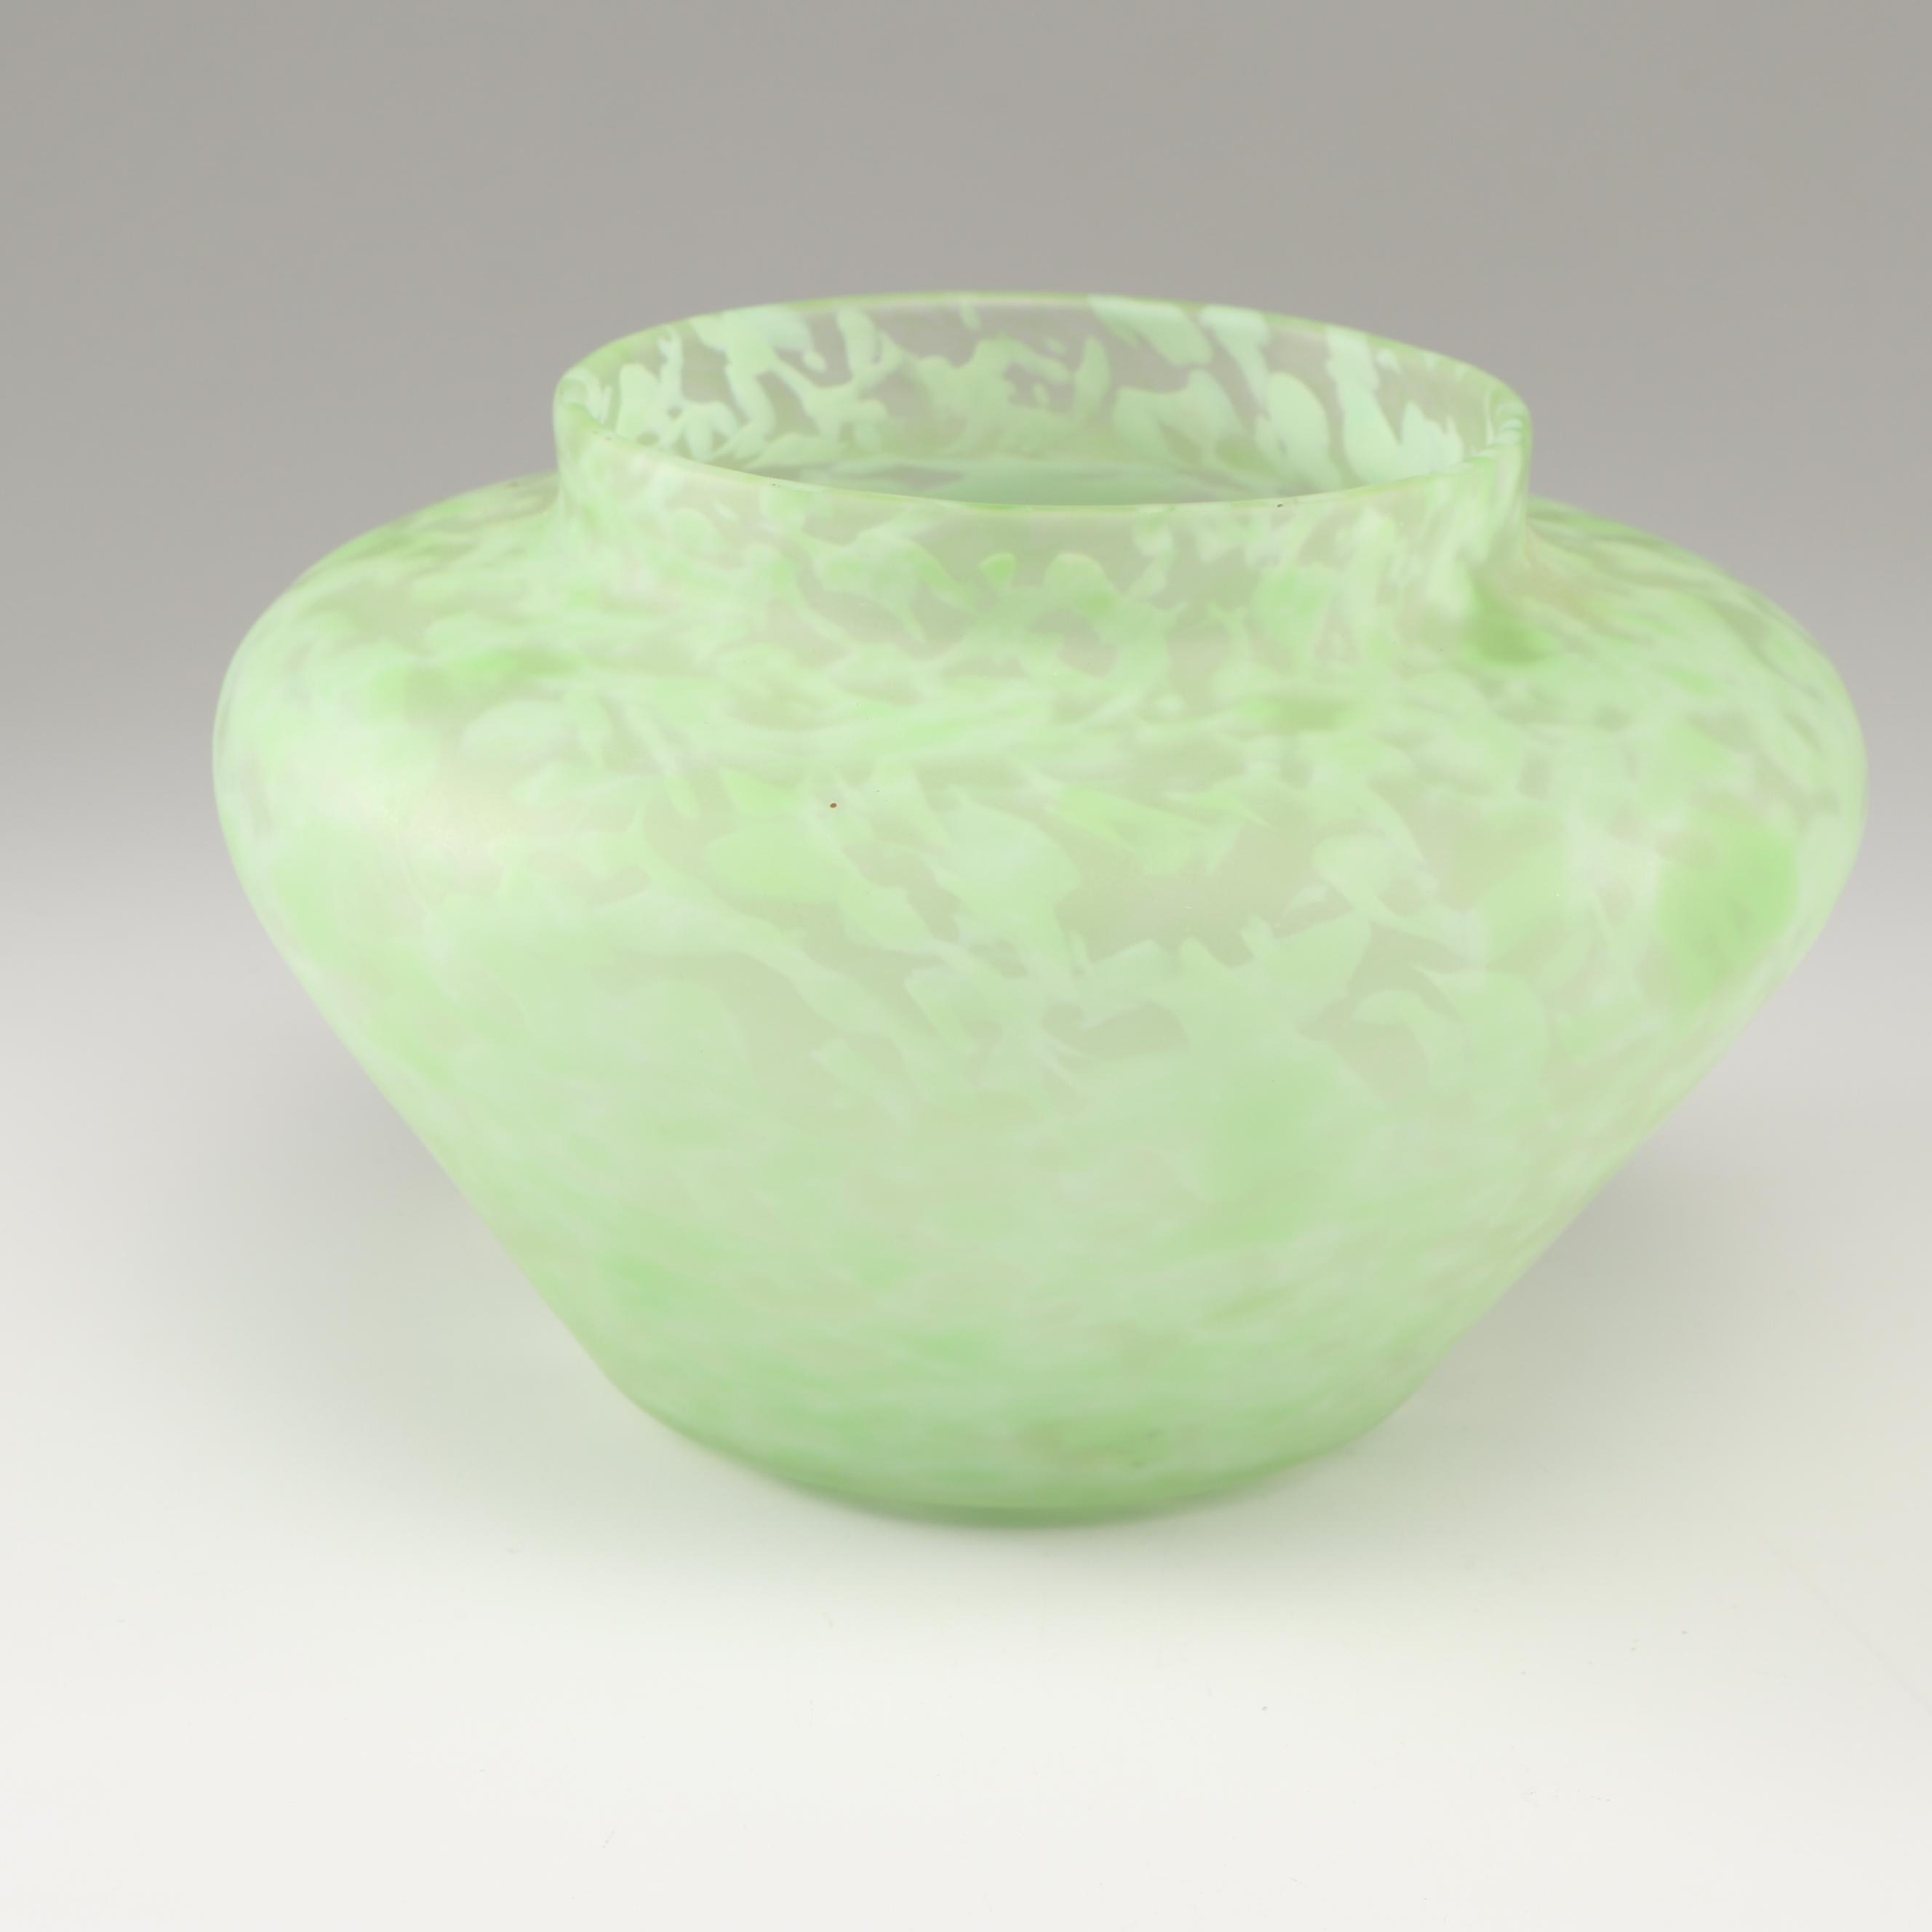 Steuben Green Mottled Art Glass Vase